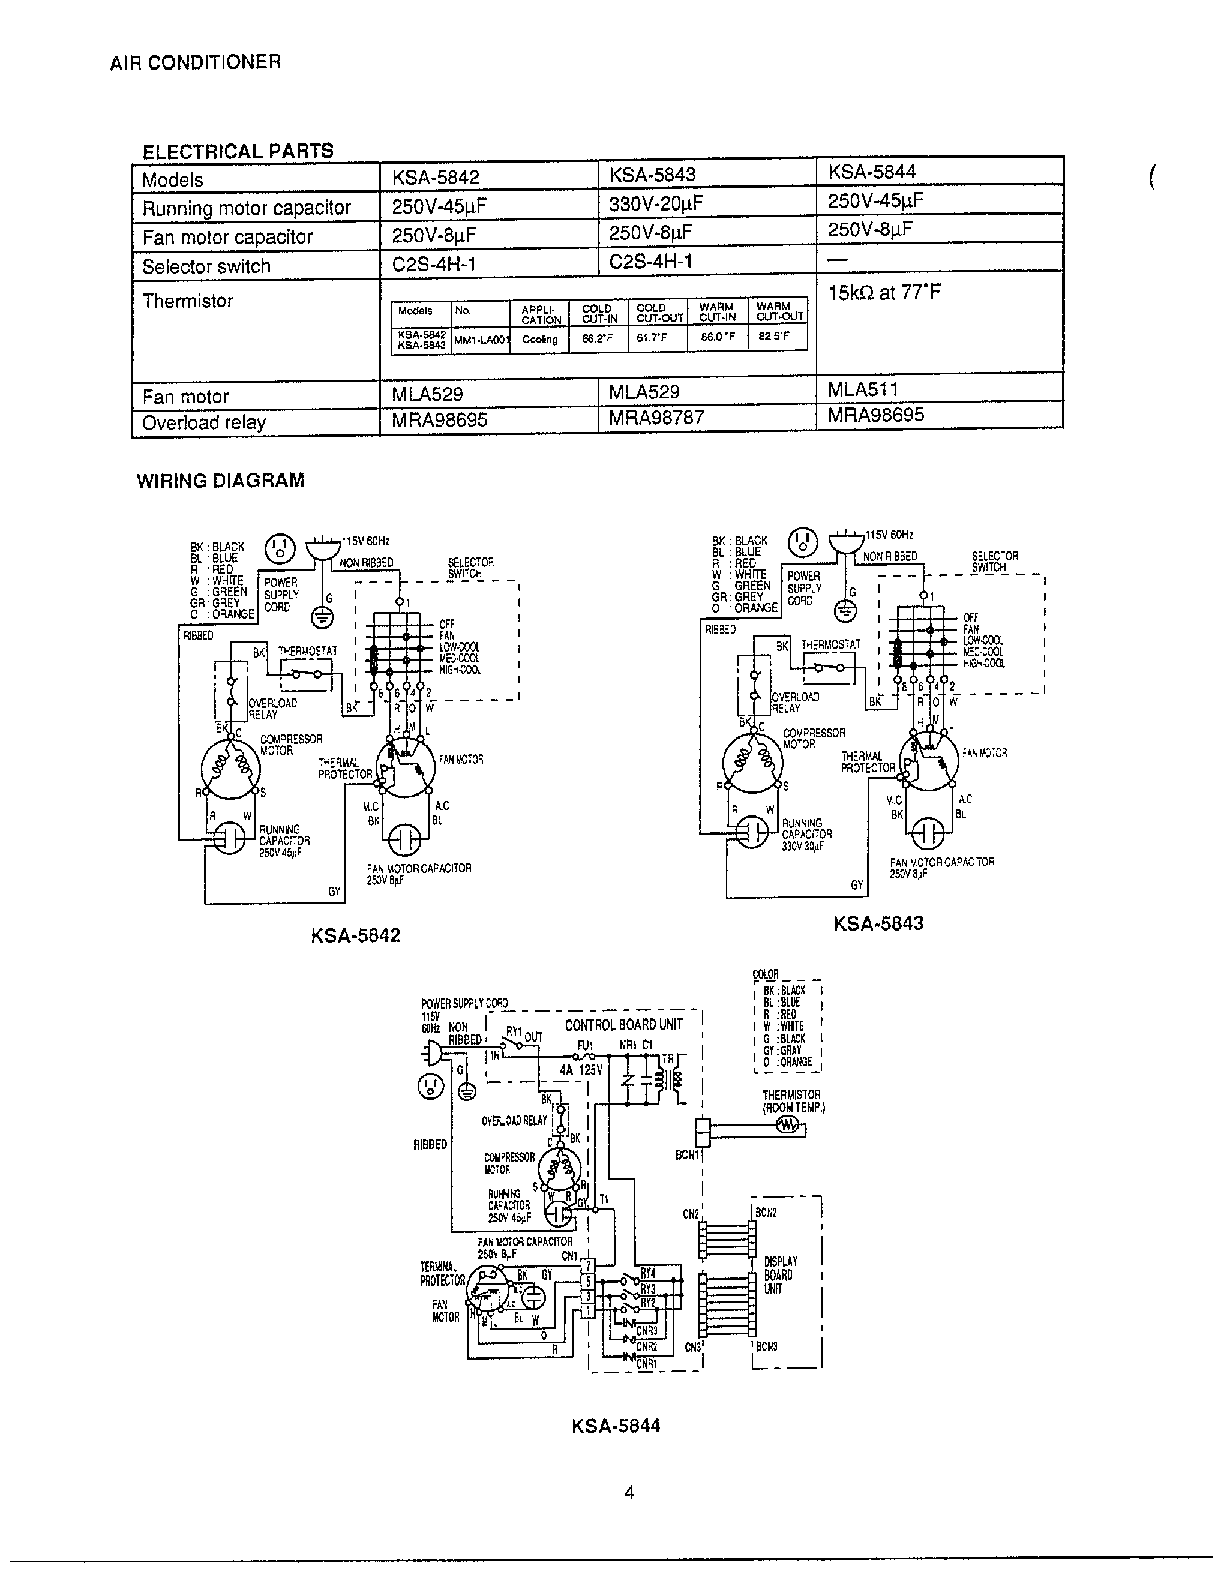 1967 mustang wiring diagram oil new holland workmaster 75 wiring, Wiring diagram